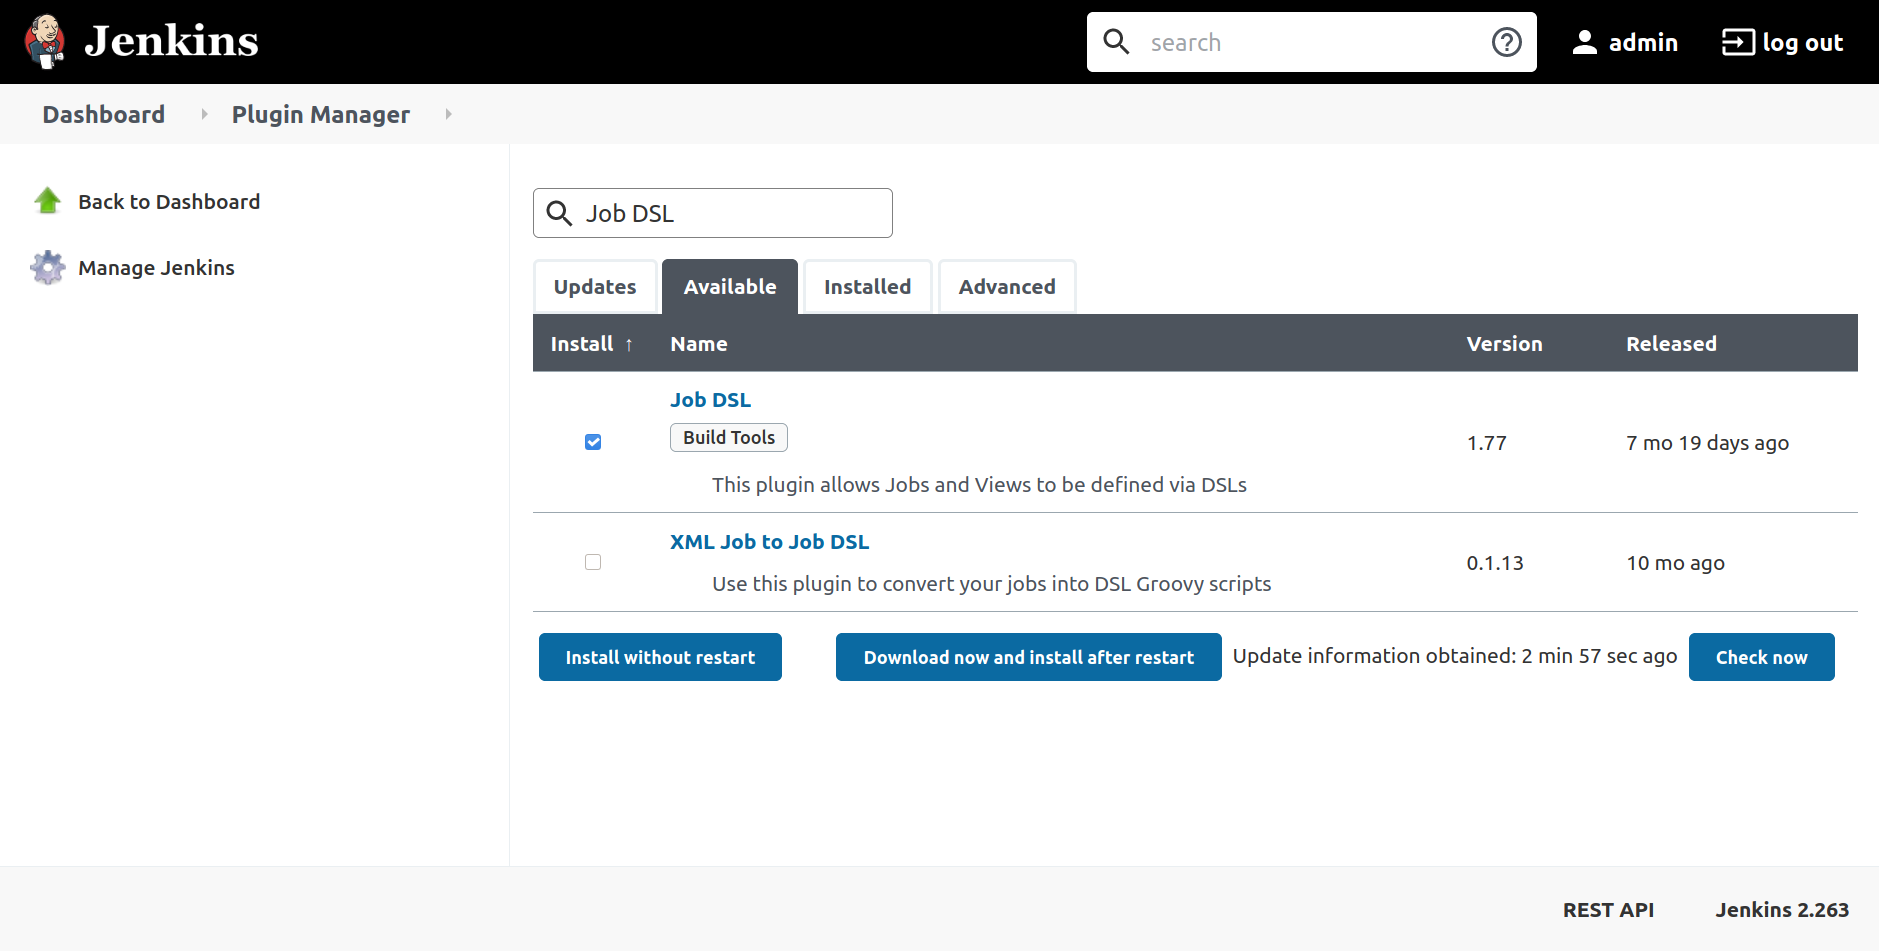 Plugin Manager page showing Job DSL checked